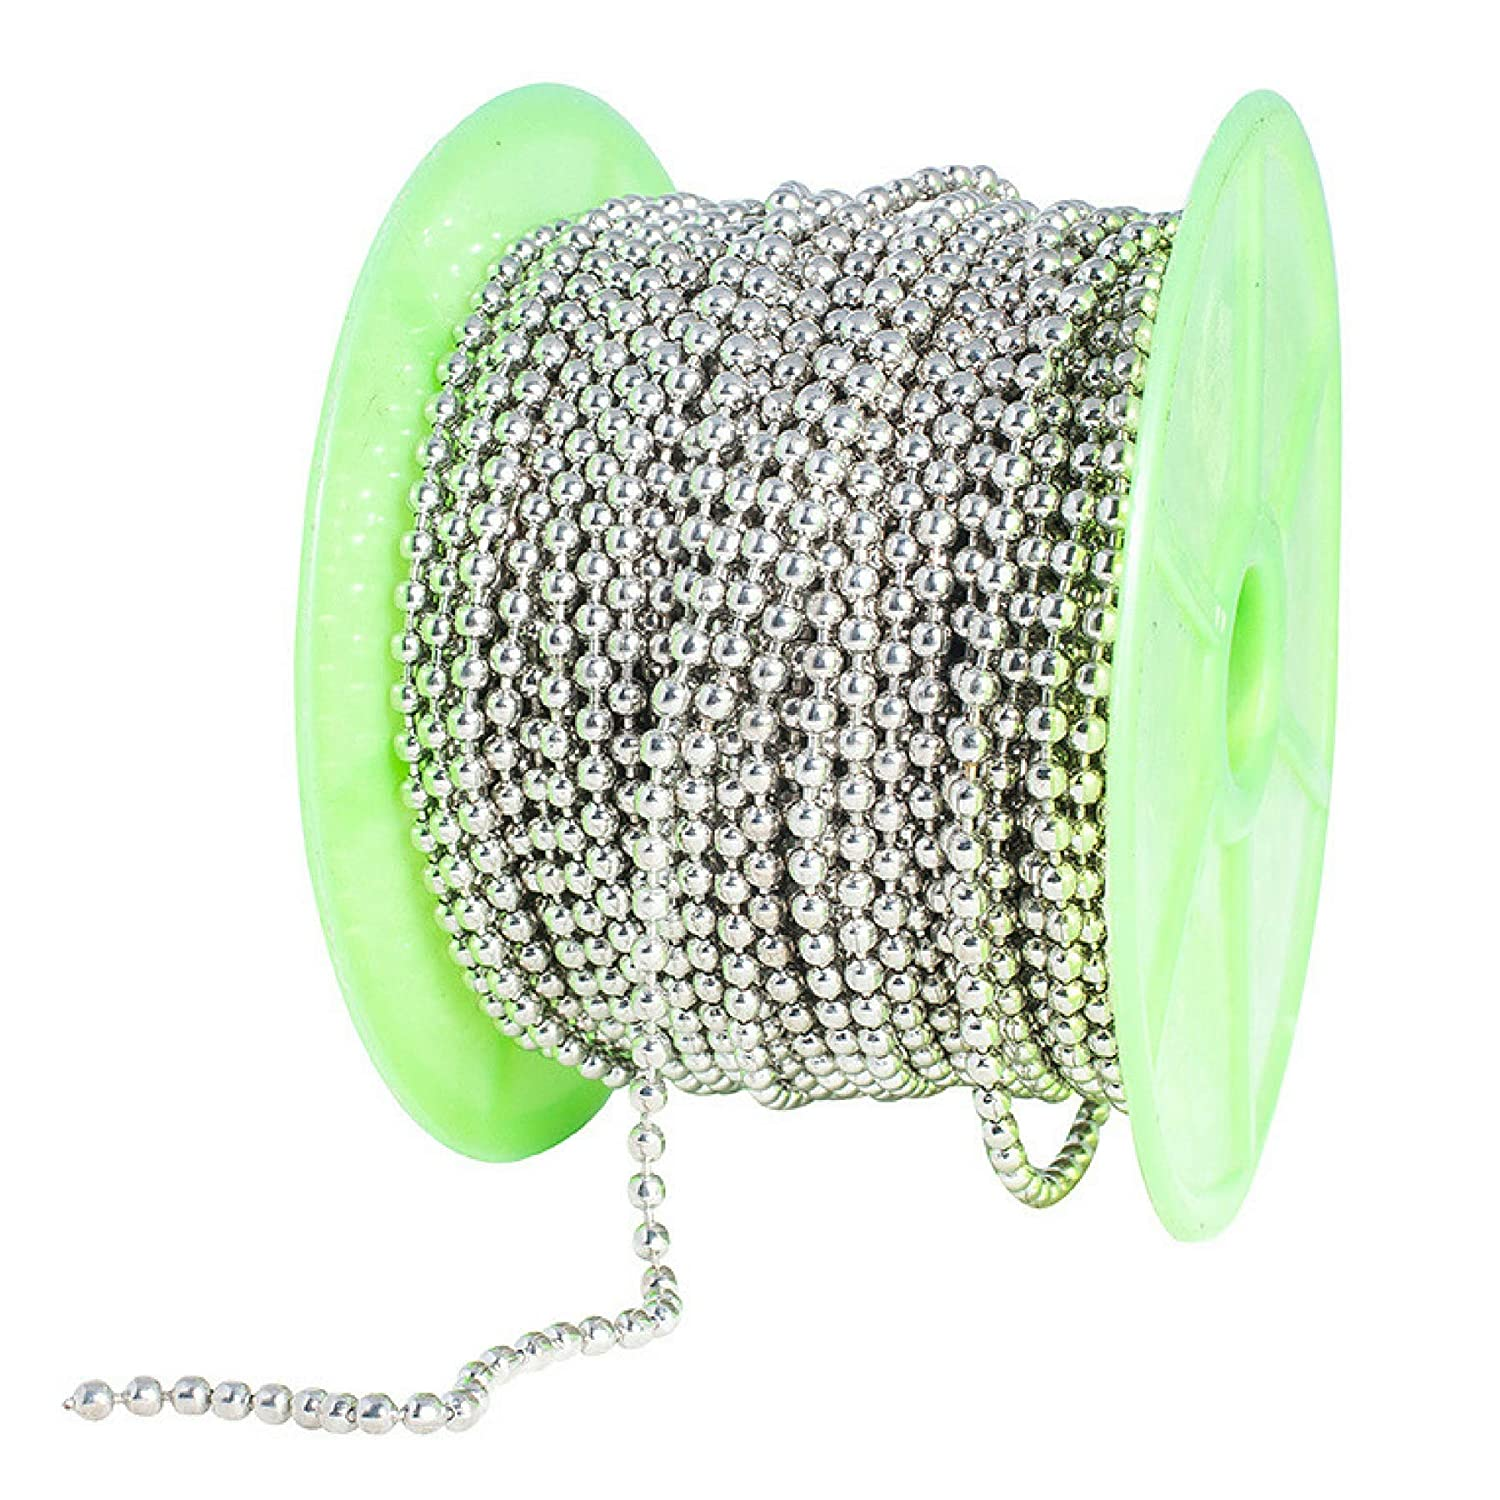 Special100% Ball Chain Spool #6 Nickel Plated Steel Bead Chain 3.2 Diameter 100 Feet (33 Yards) Included 30 Pc Matching connectors